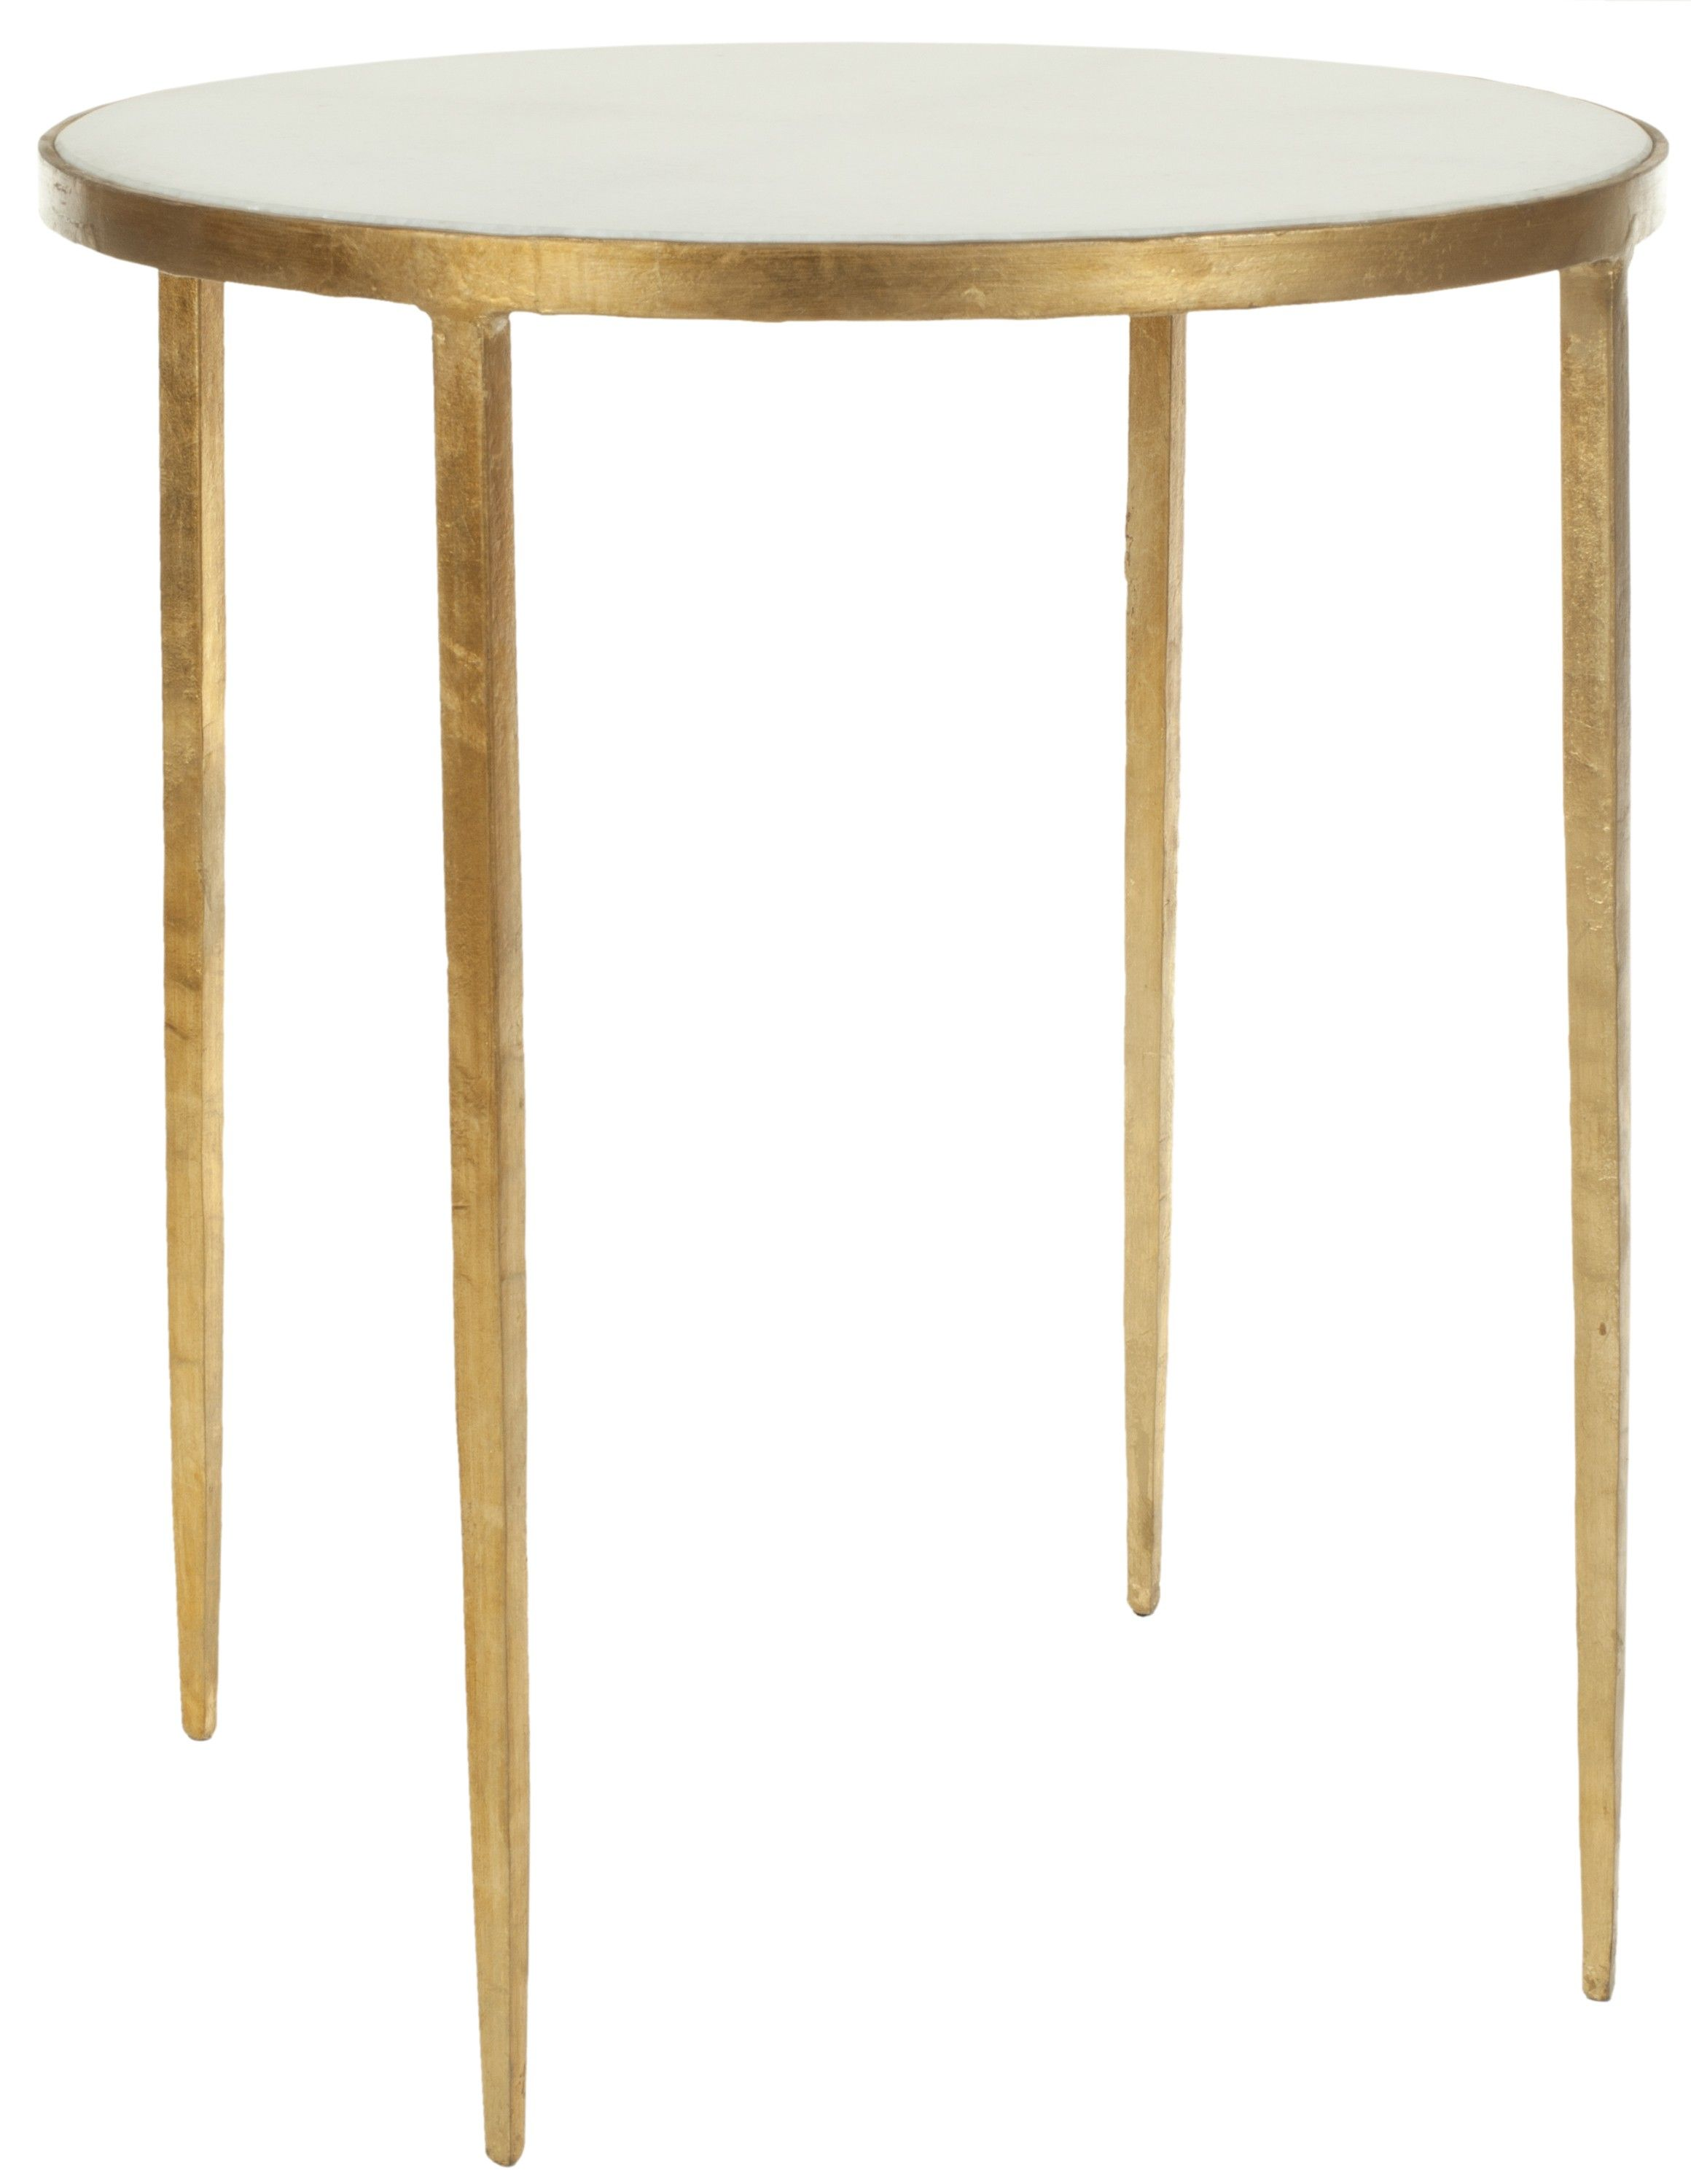 storage decorative furniture unique tabl gold ott cabinet for accent round kijiji glass and tall tables table white furnitur living threshold bench modern target room outdoor